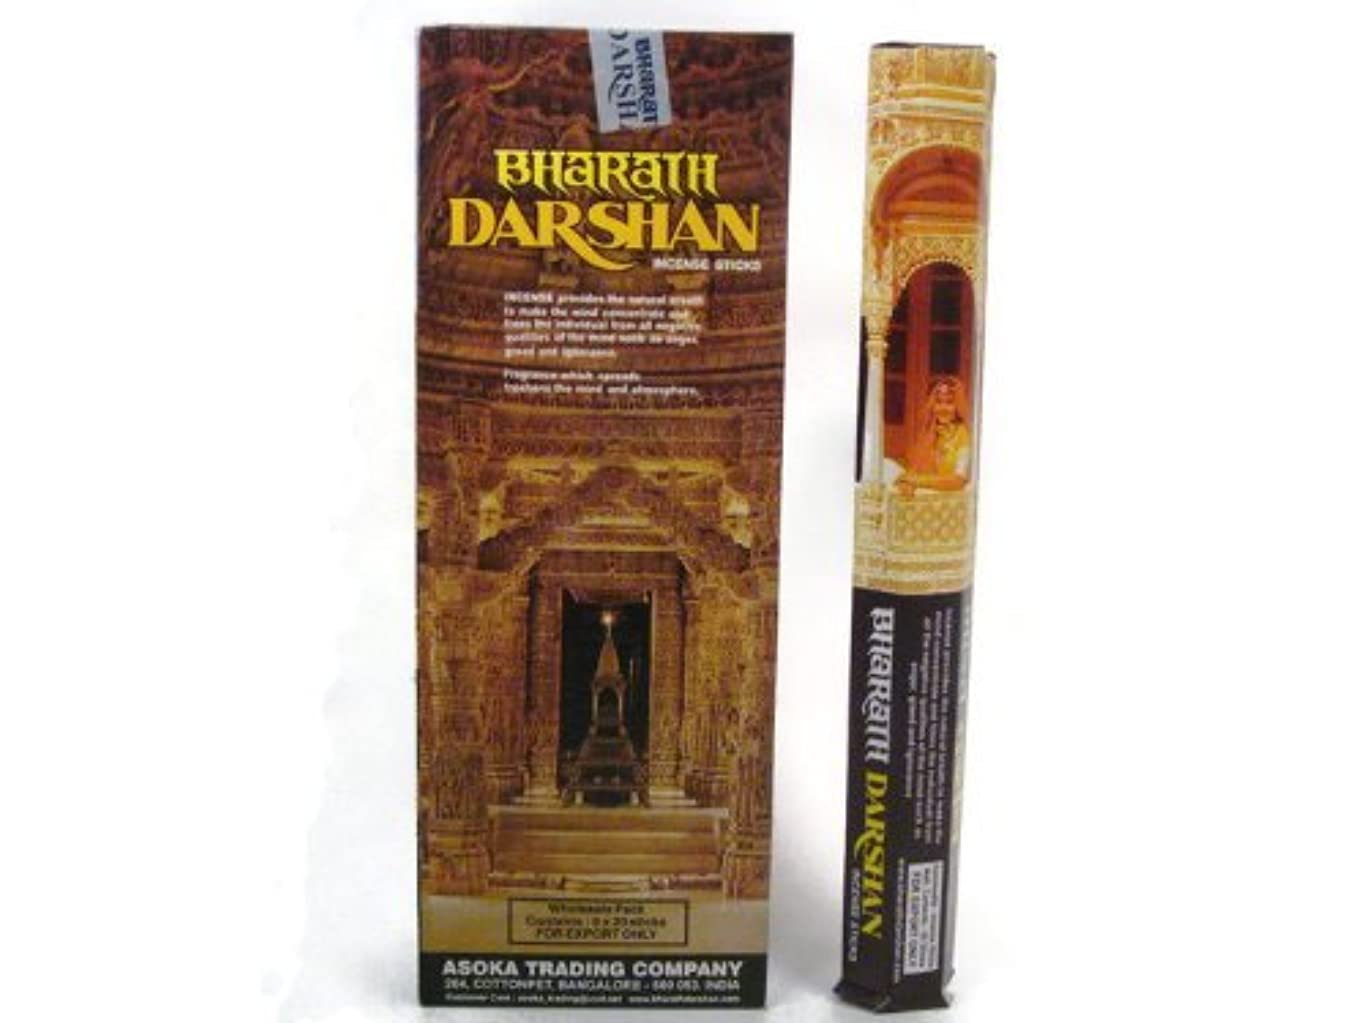 吸収無線クラシカルBharat Darshan Incense Sticks - 120 Sticks